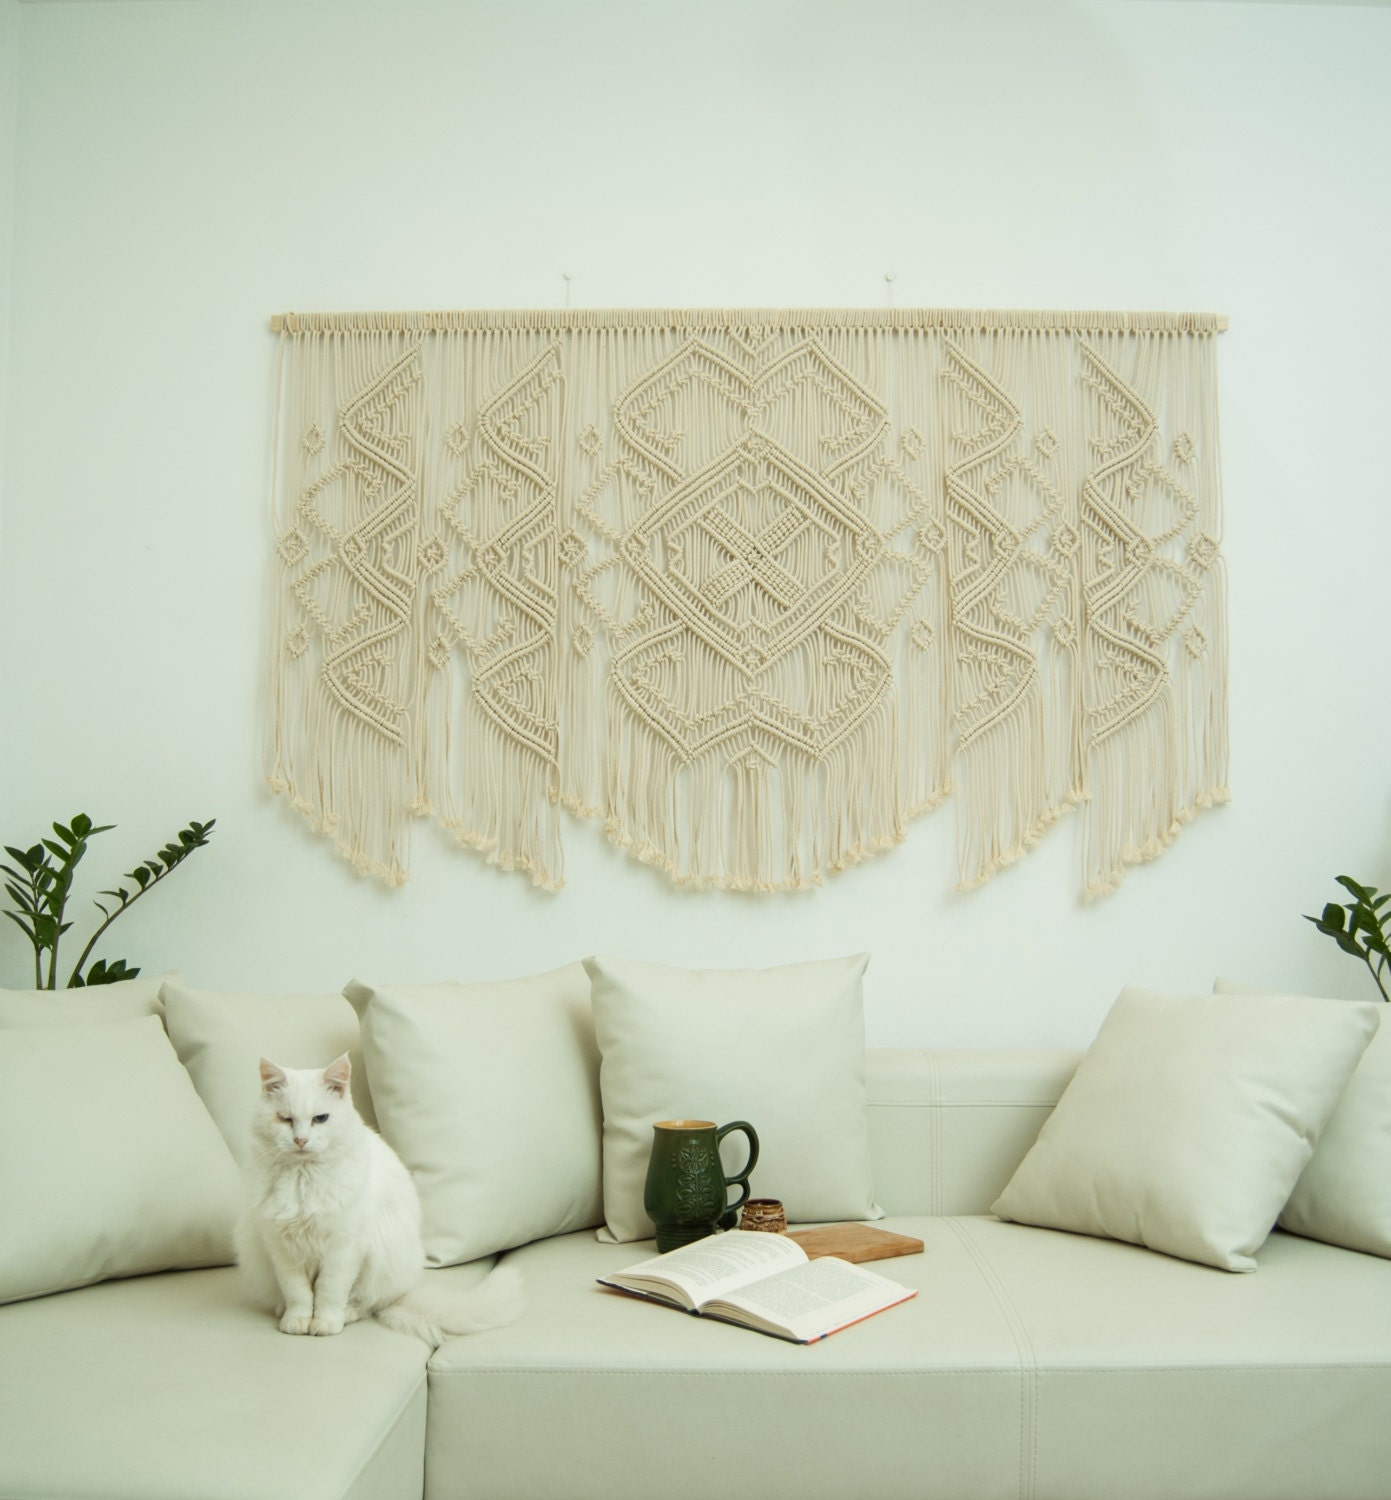 Large Wall Hangings Large Macrame Wall Hanging Macrame Wall Hanging Macrame